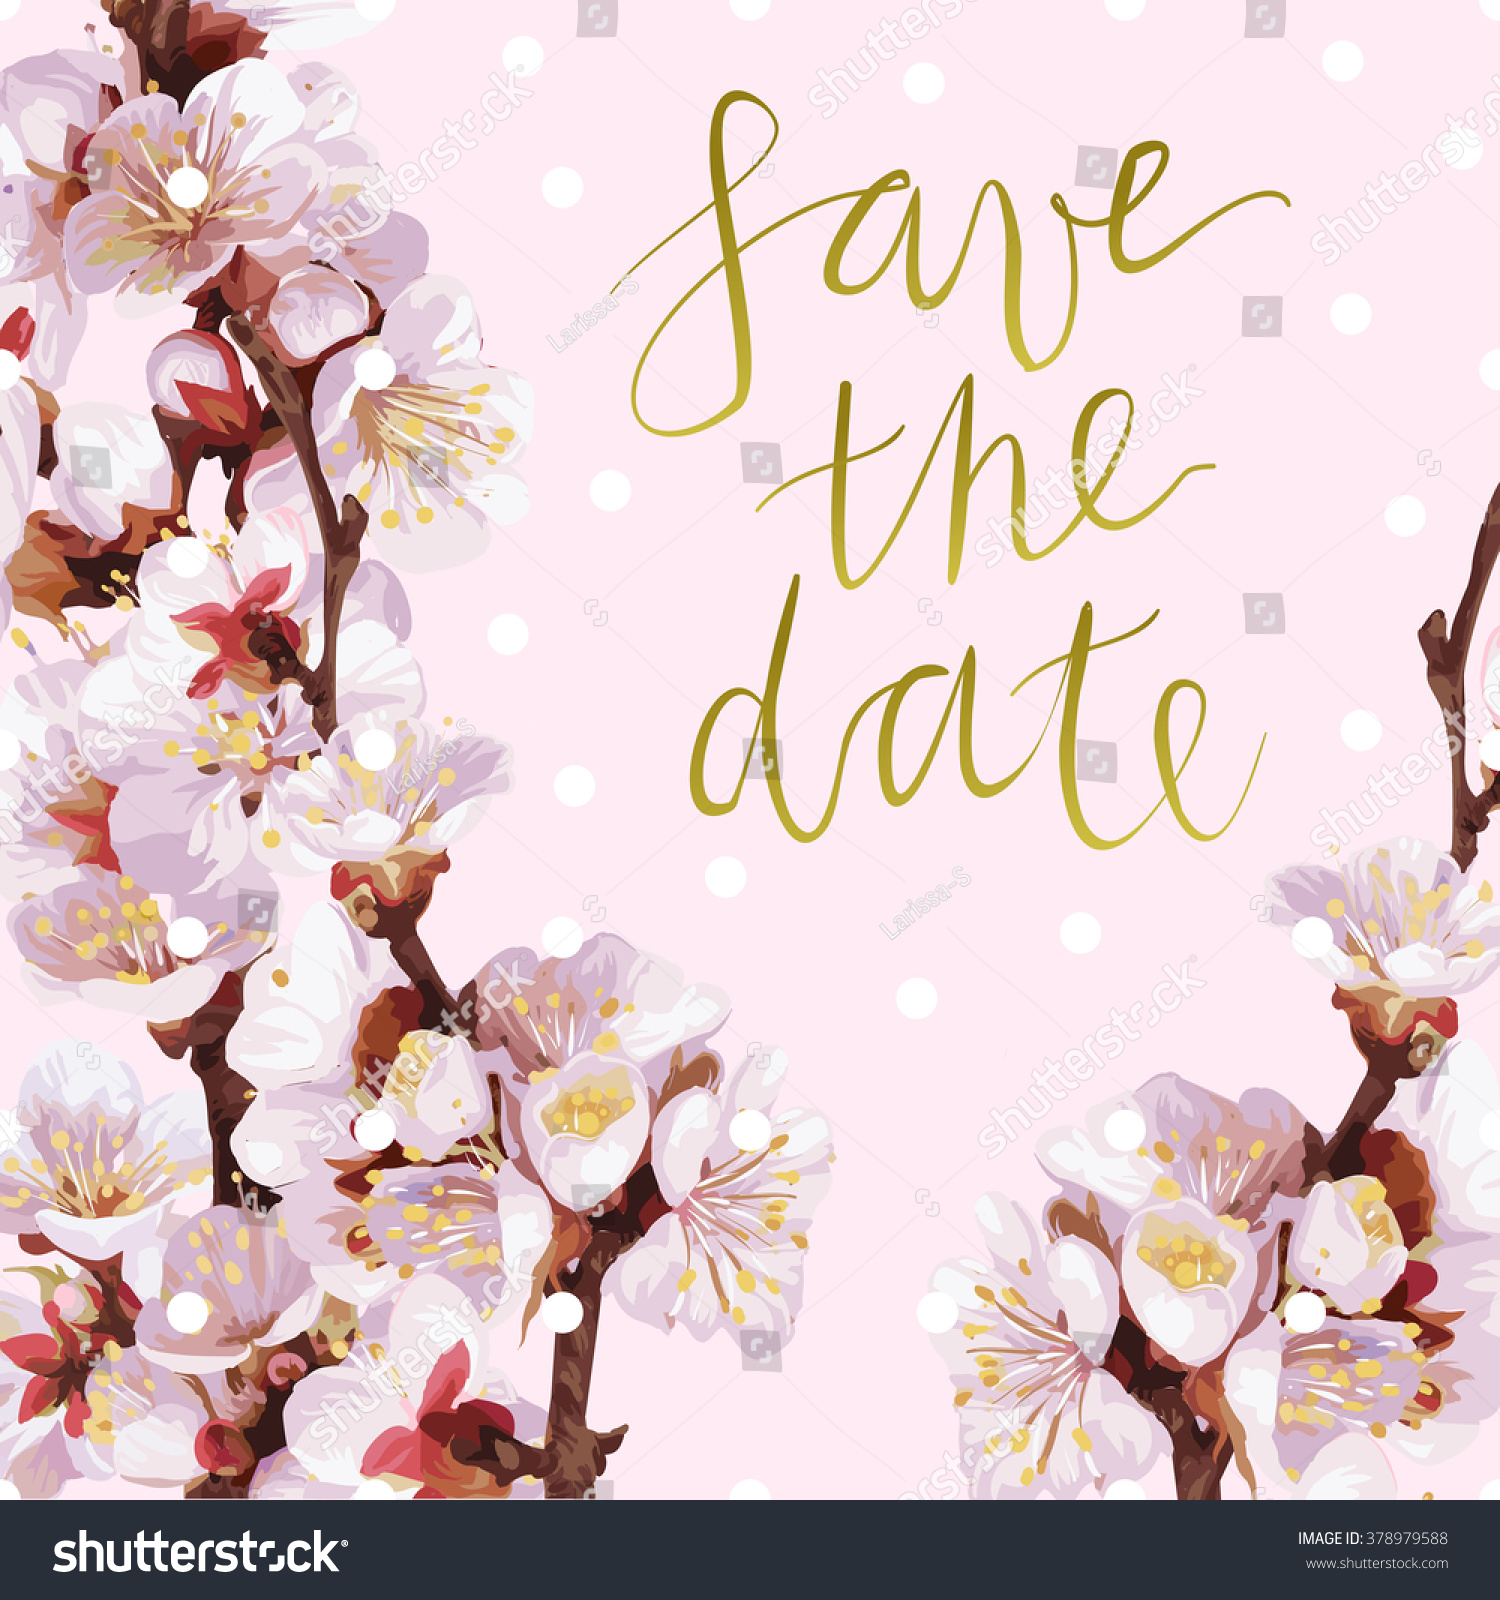 Vector Invitation Template Save Date Hand Stock Vector (Royalty Free ...